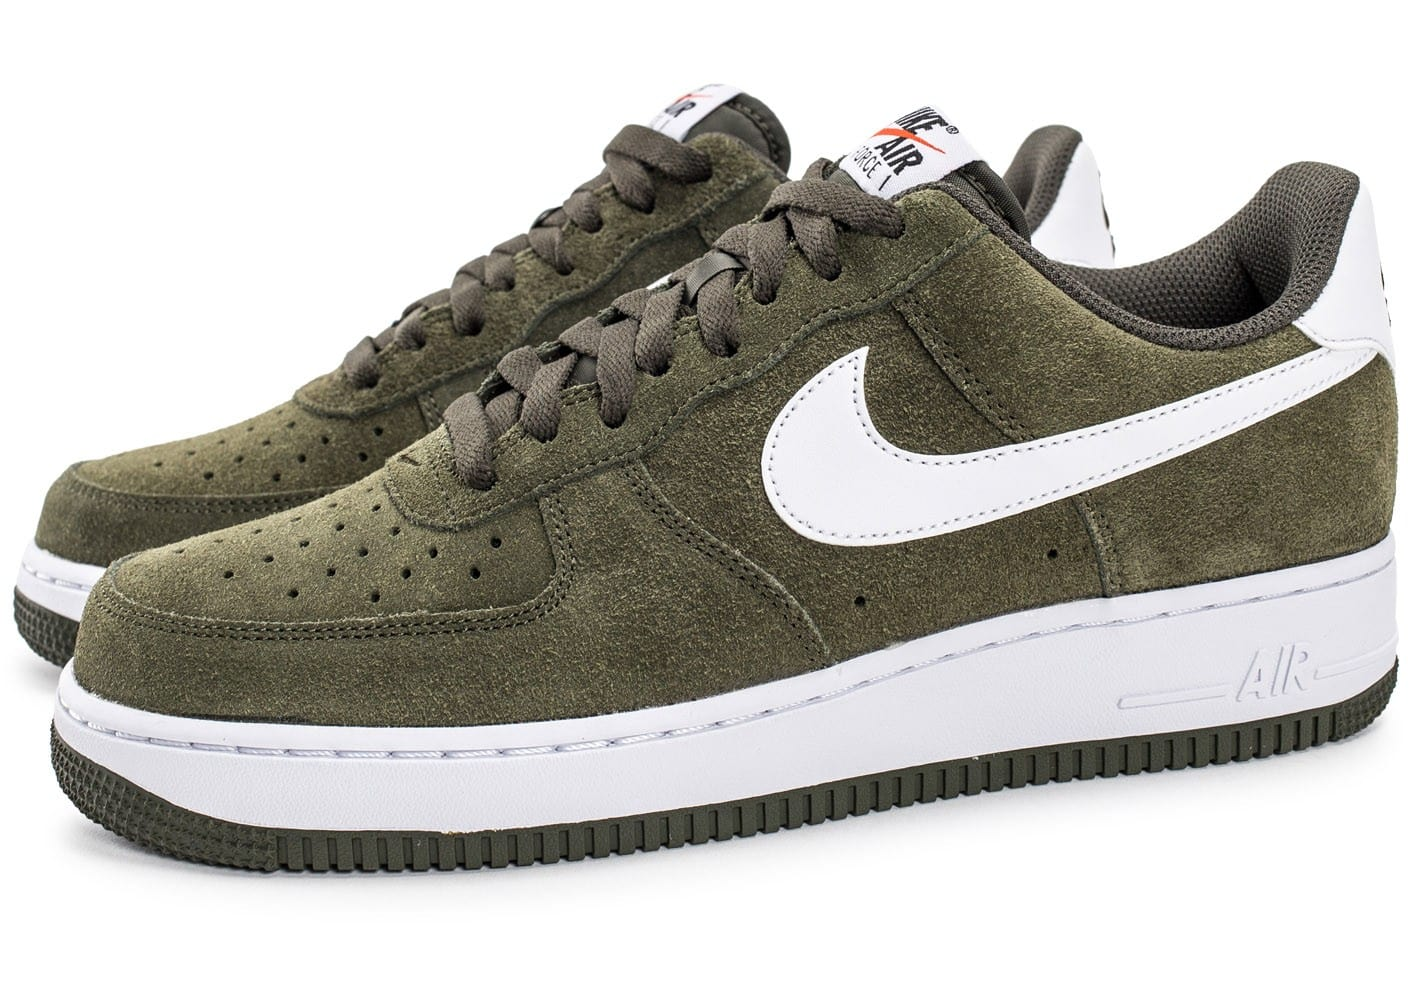 nike air force 1 suede kaki chaussures baskets homme chausport. Black Bedroom Furniture Sets. Home Design Ideas